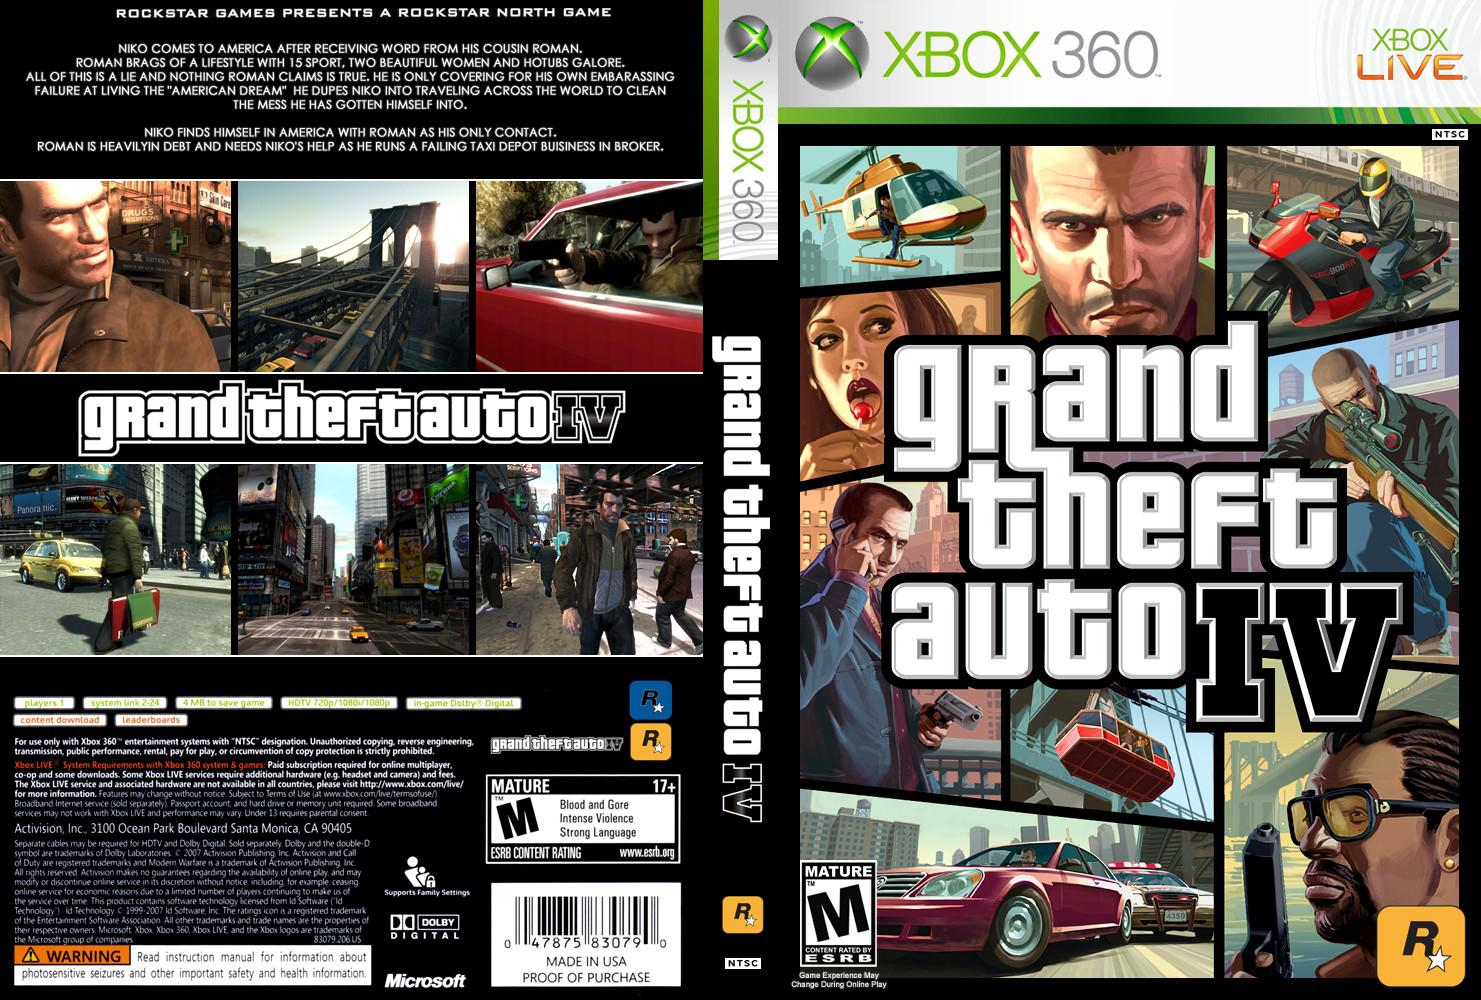 capa xbox360 %255bwww.gamecover.com.br%255d0521